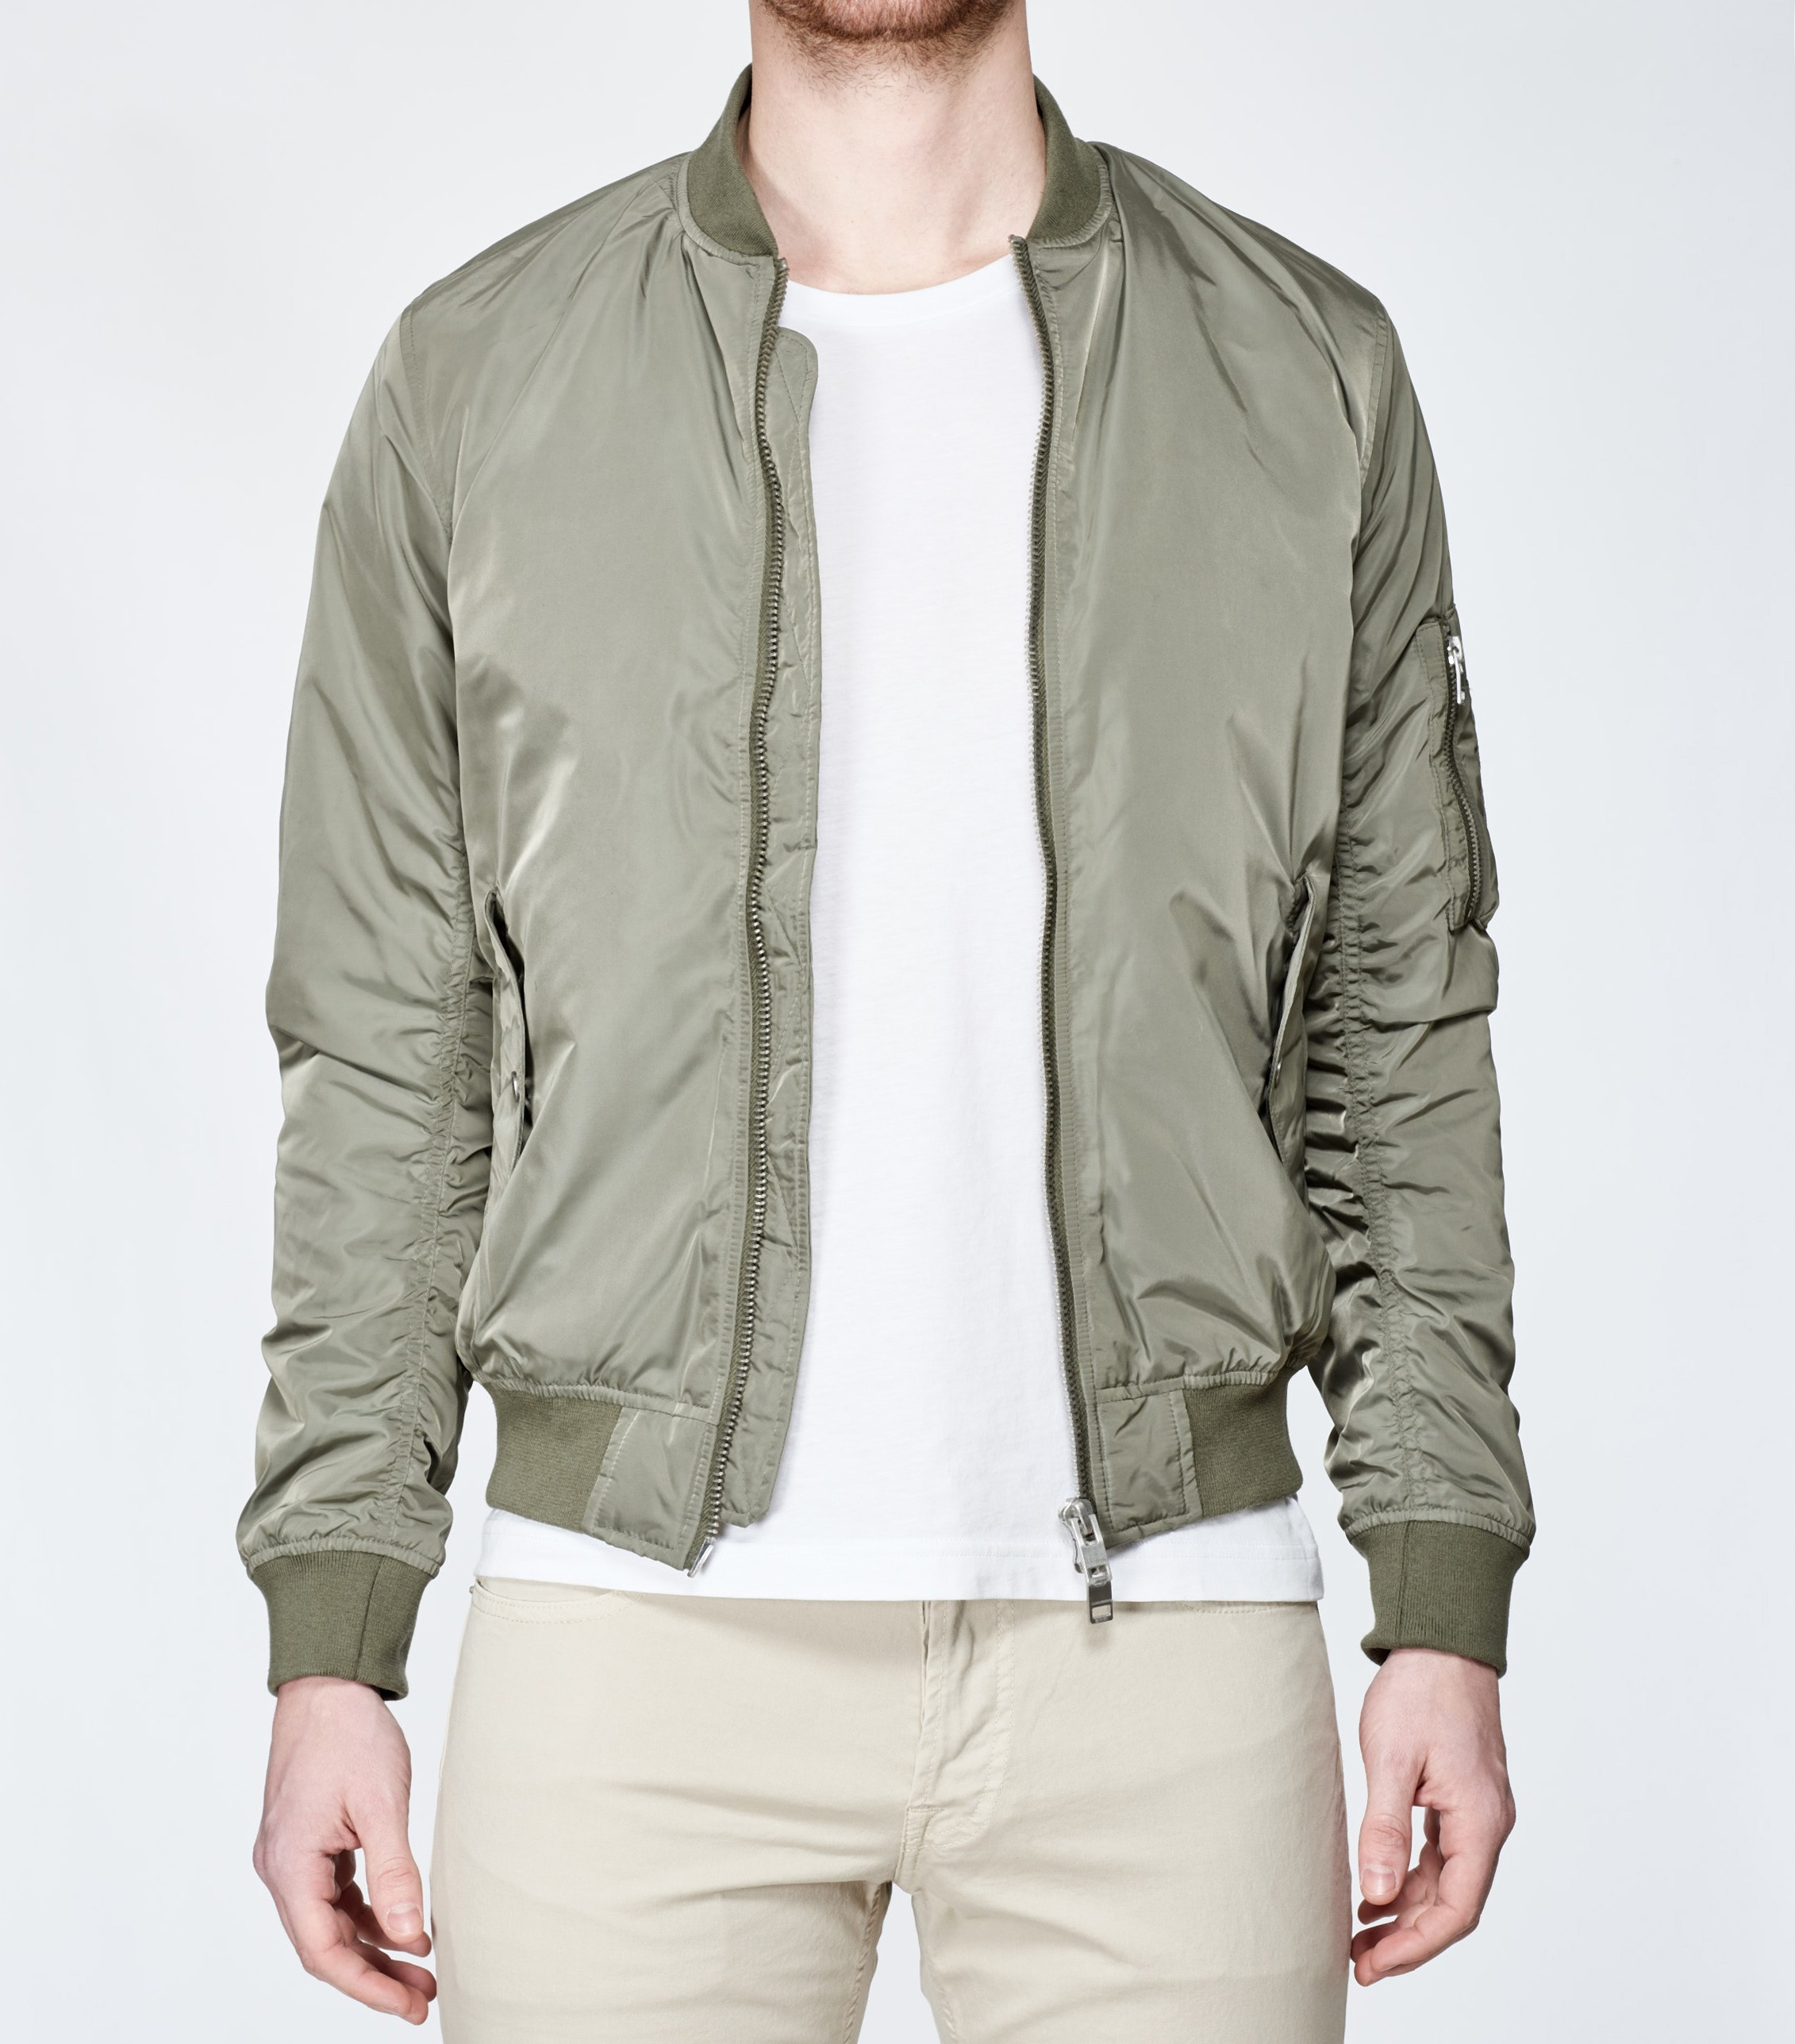 73a572903 BRAND NEW Olive Bomber Marky Taff M